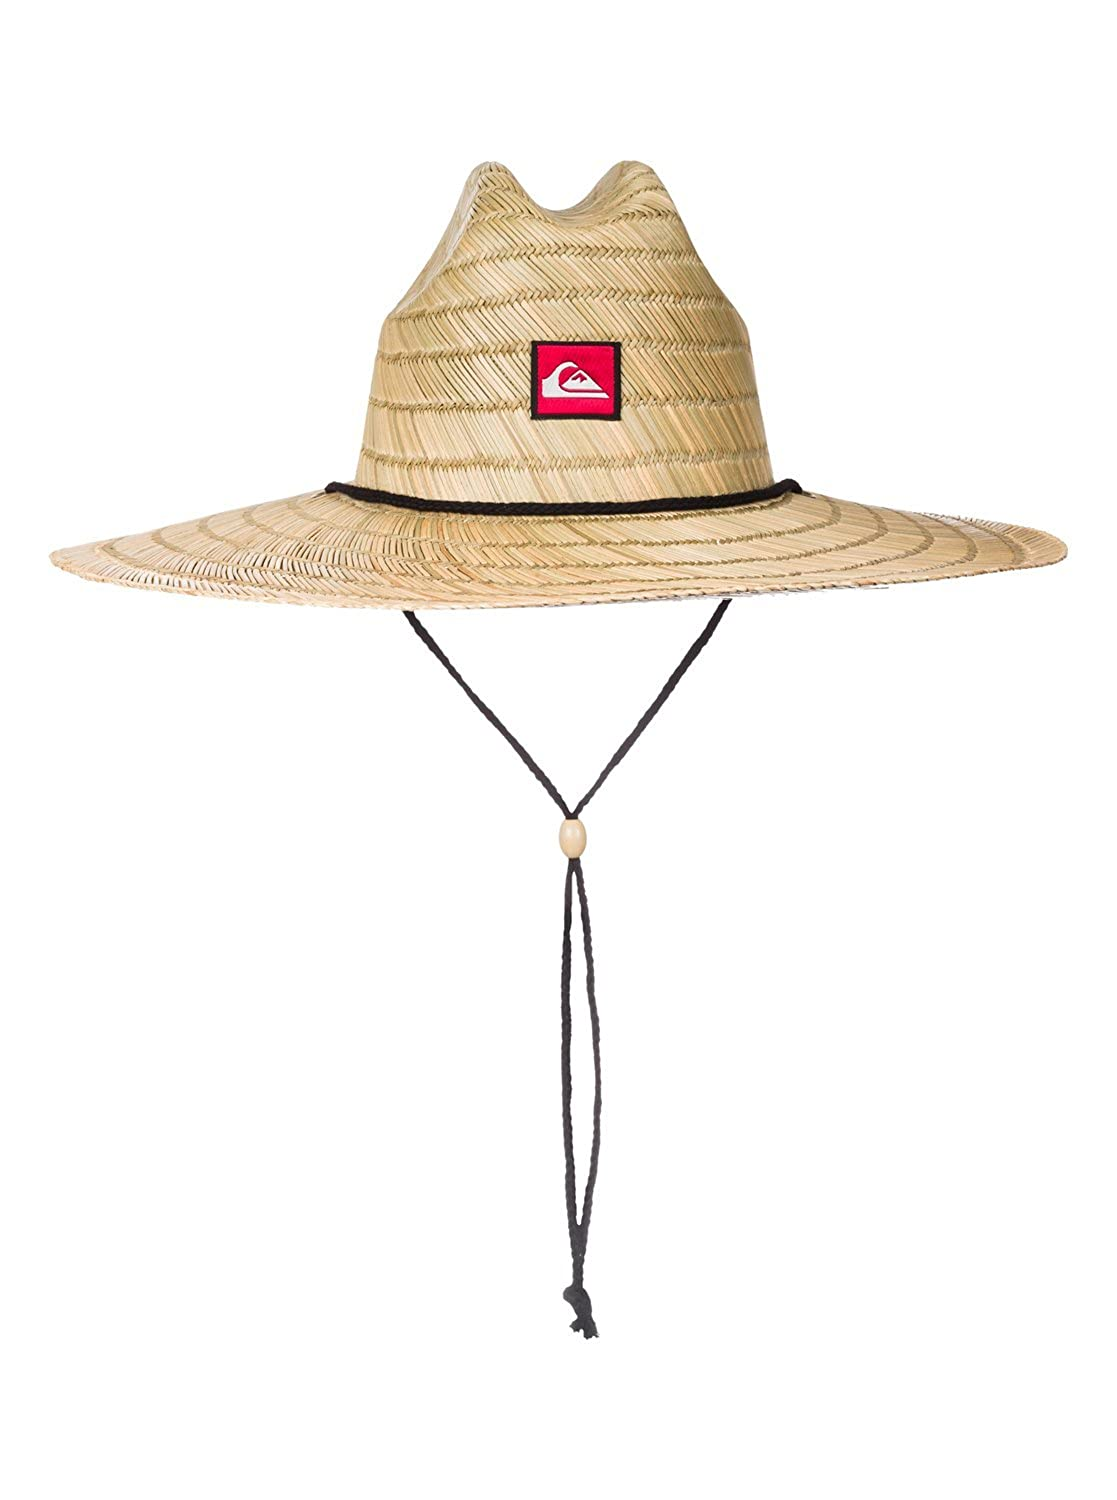 89025ac01ecbea Amazon.com: Quiksilver Men's Pierside Straw Hat, Natural, S/M: Clothing